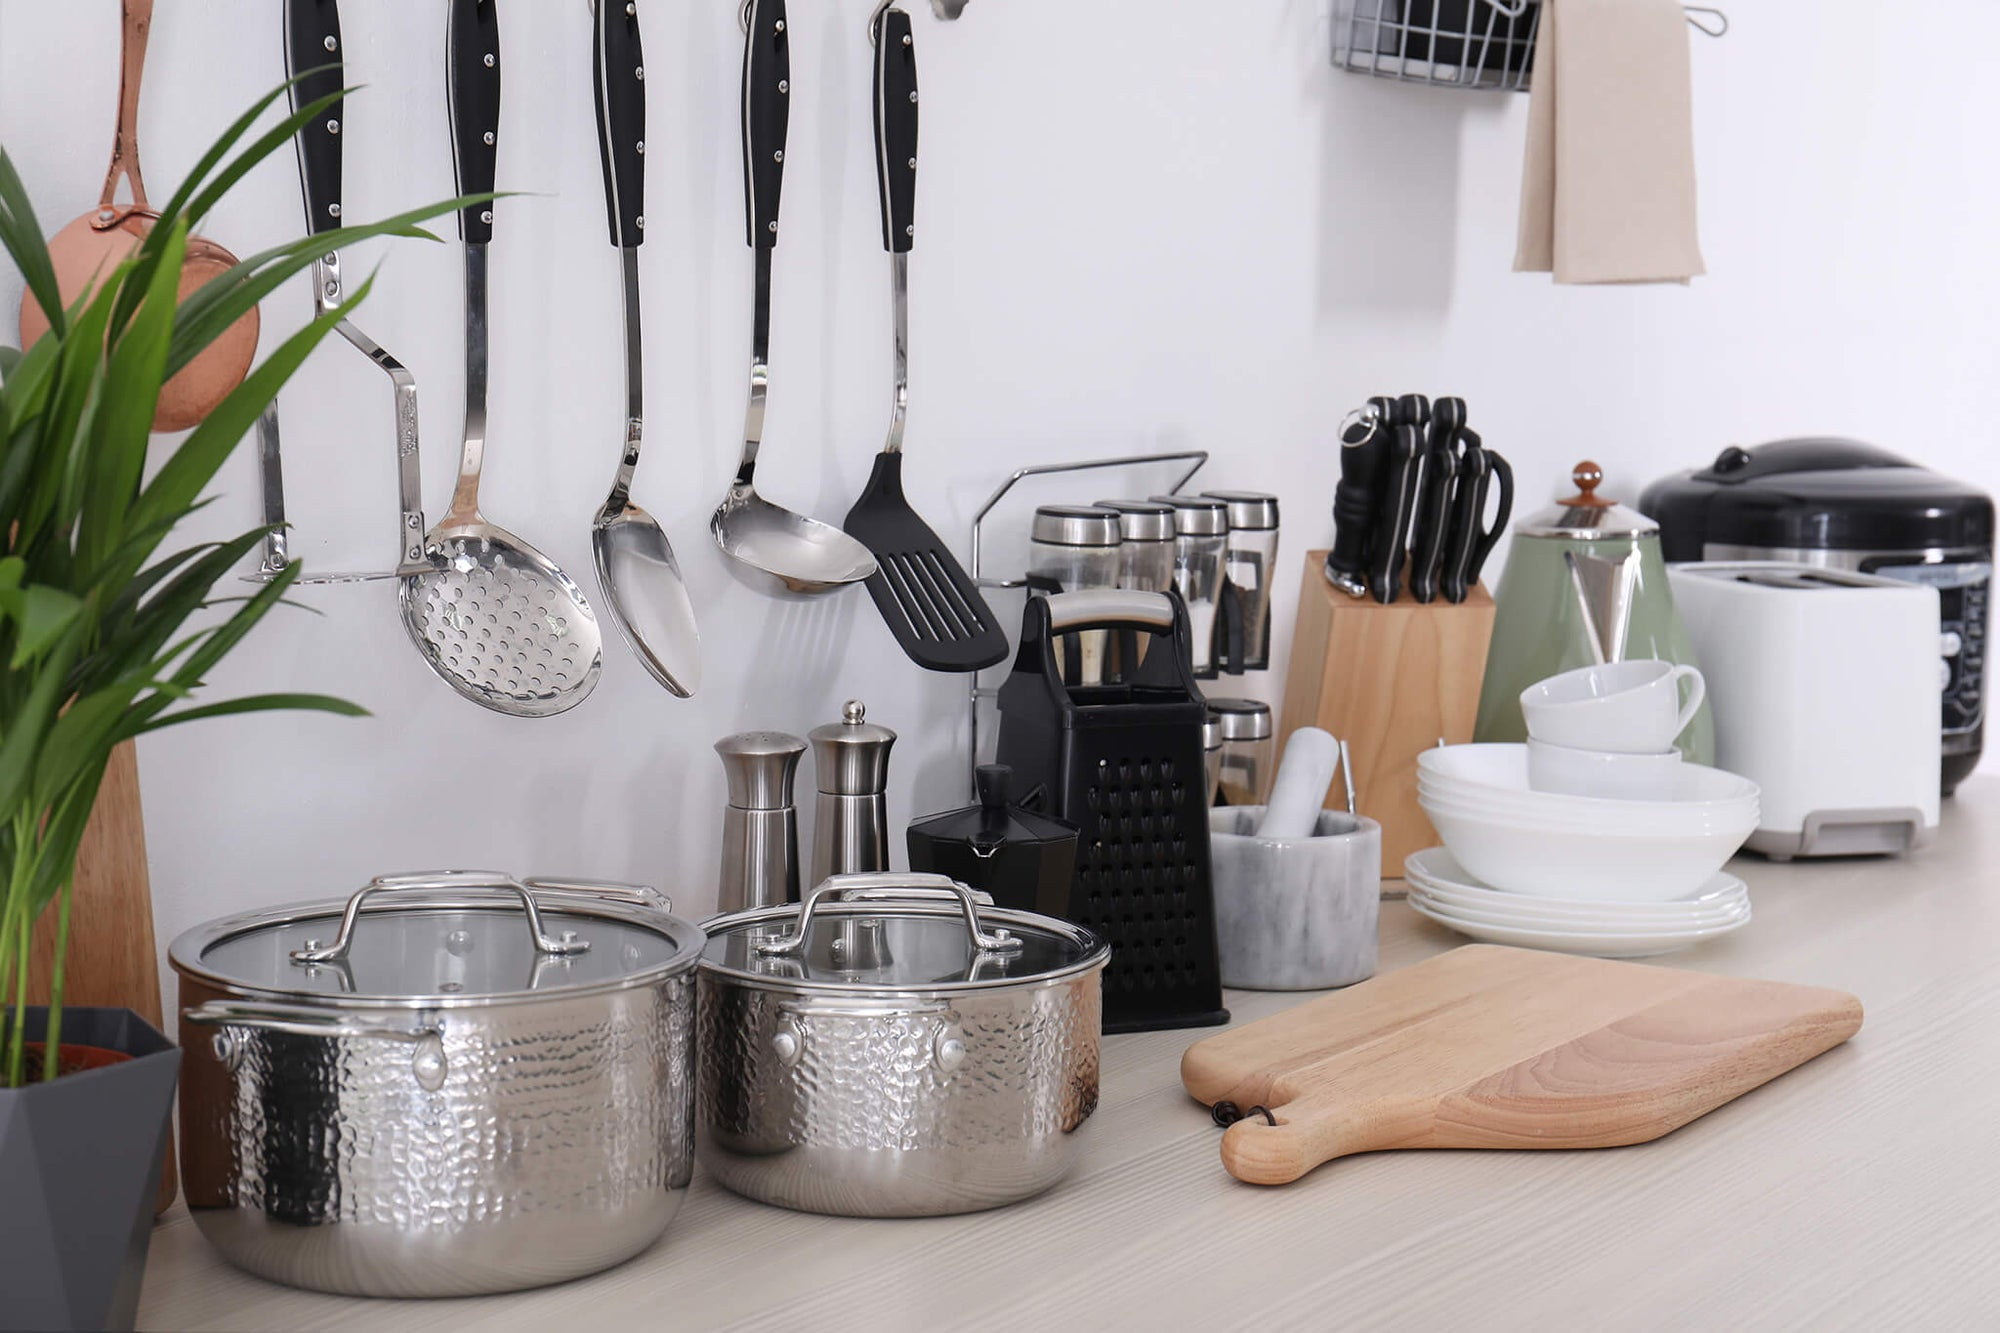 5 Different Types of Kitchenware – Features & Recommendations